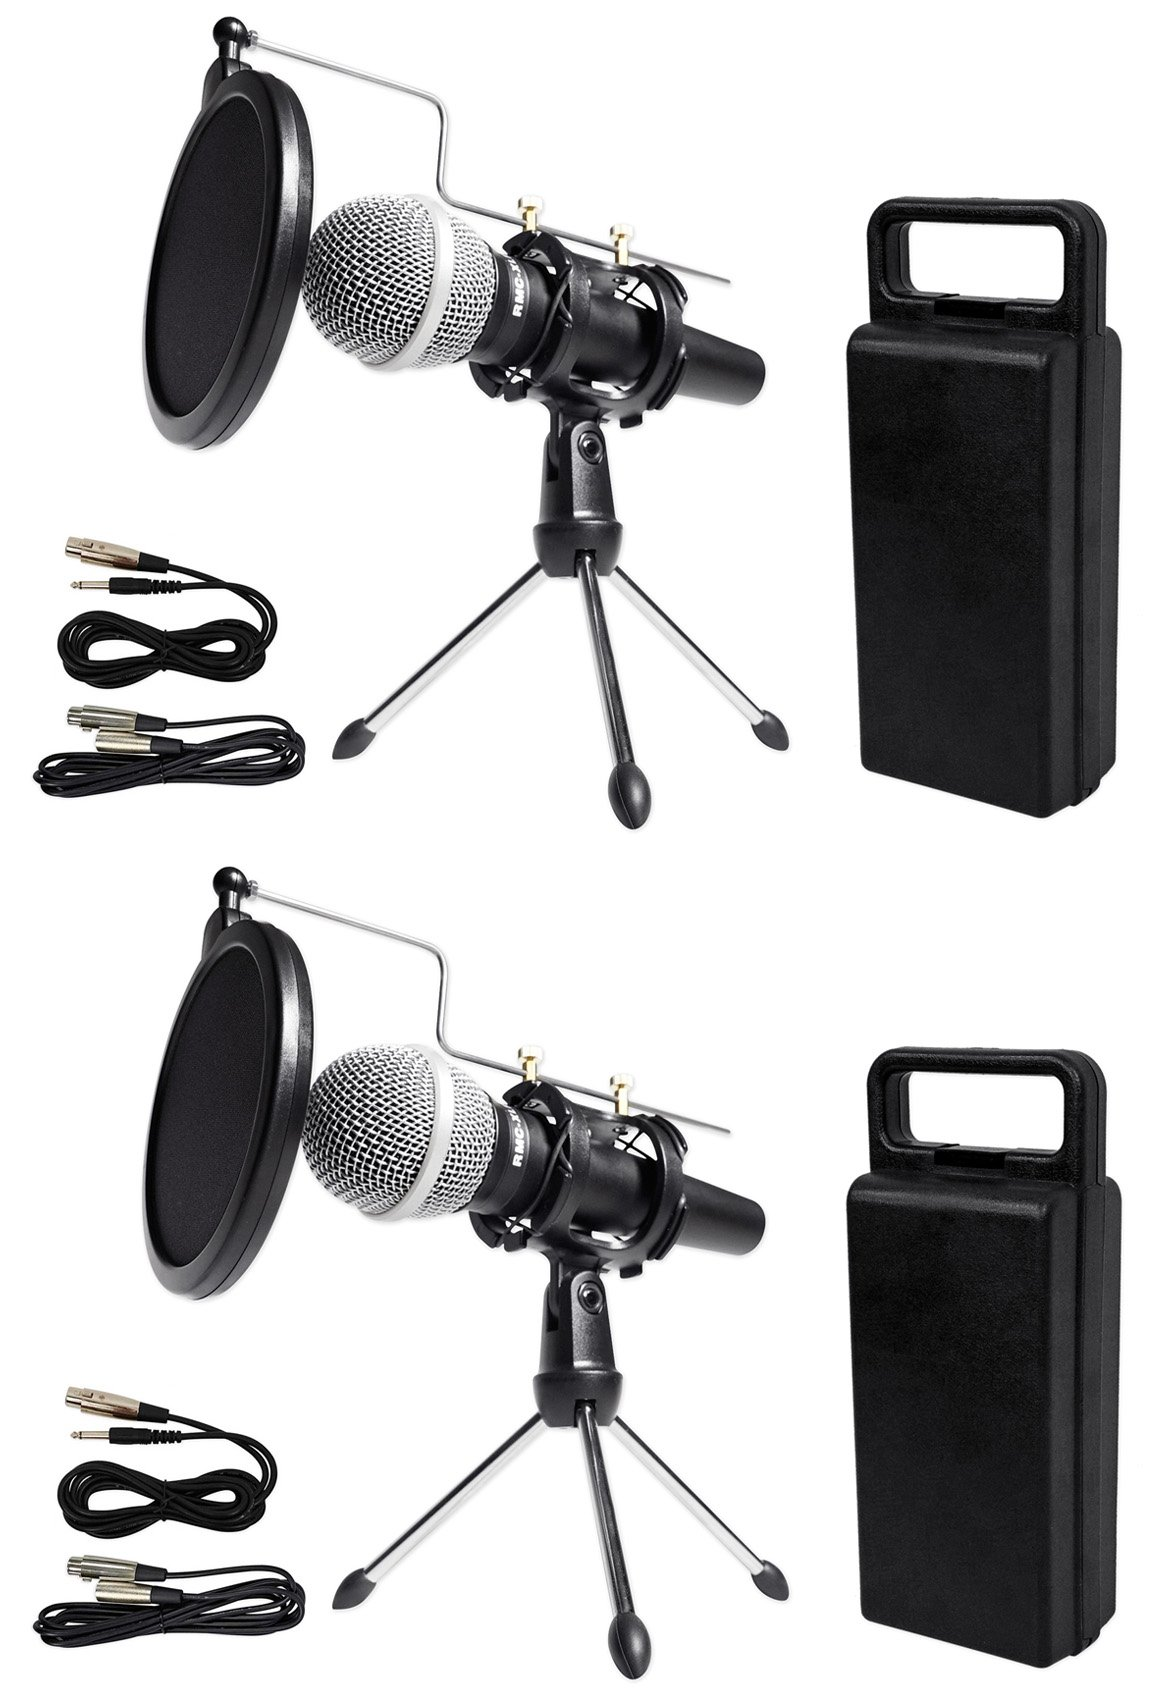 (2) Rockville Dynamic Podcasting Podcast Microphones+Stands+Pop Filters+Cables by Rockville